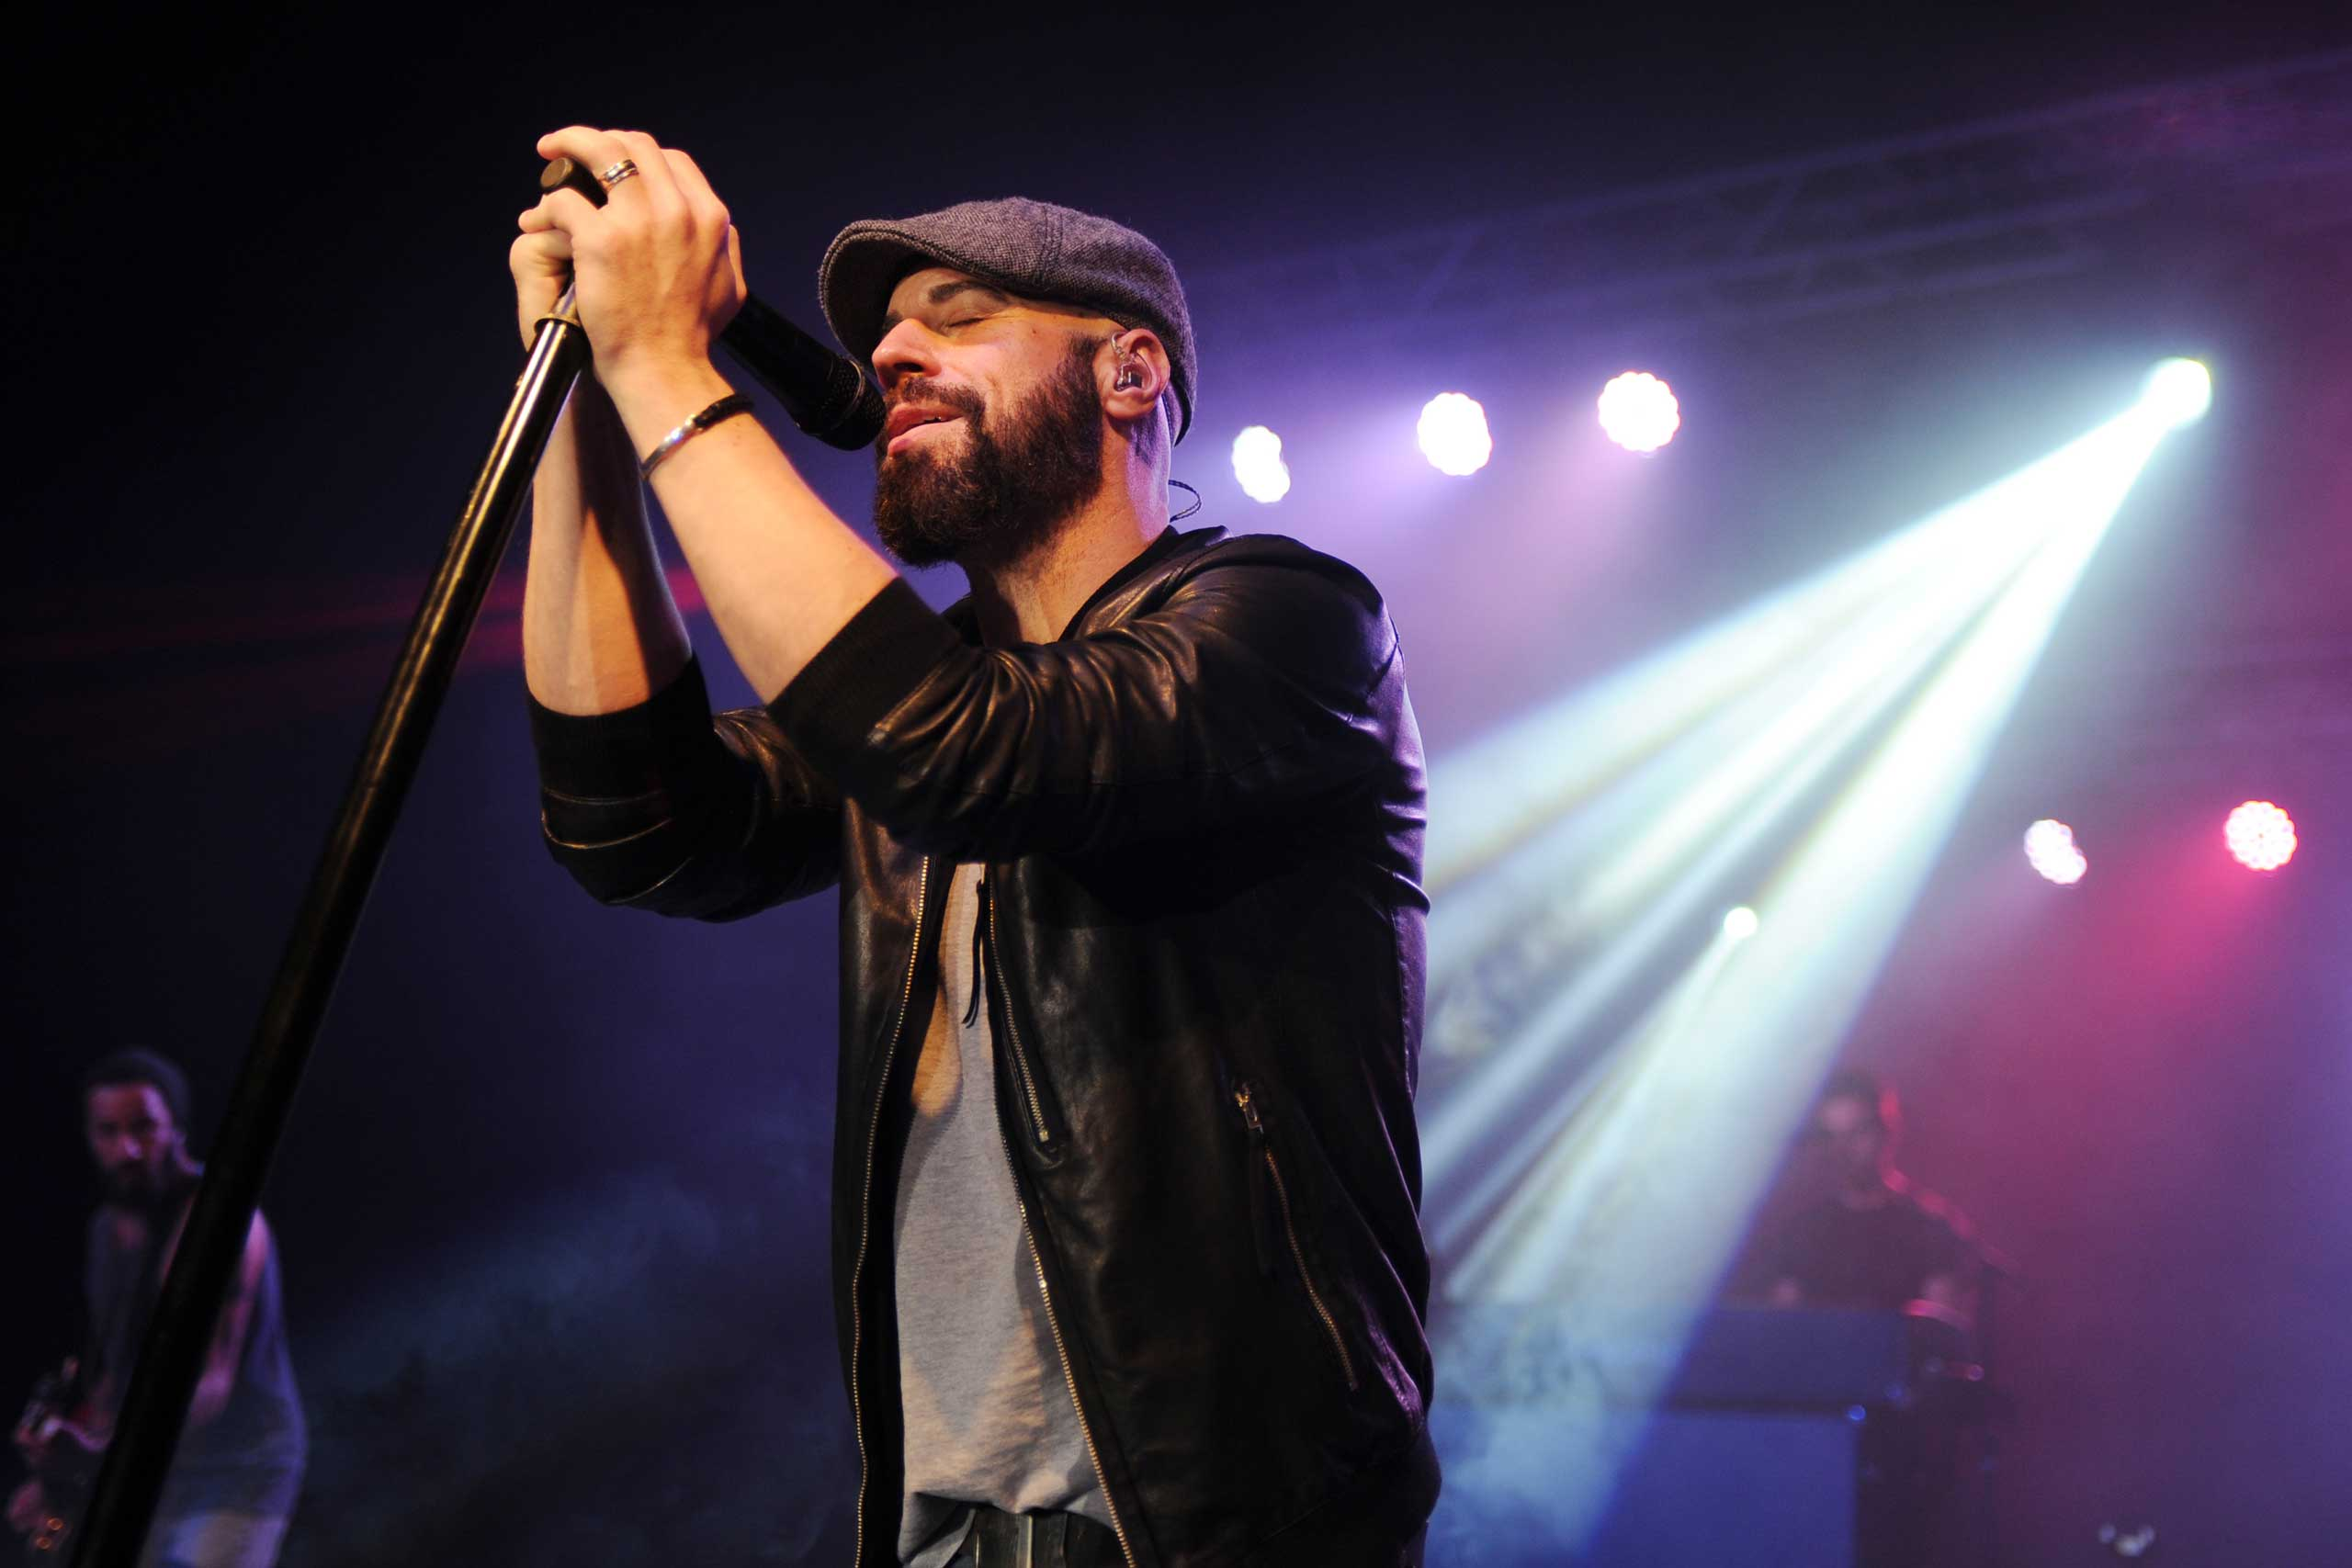 <b>Chris Daughtry</b>, who came in 4th on season 5, performs at Pompano Beach Amphitheatre in Pompano Beach, Fla. on Nov. 12, 2014.